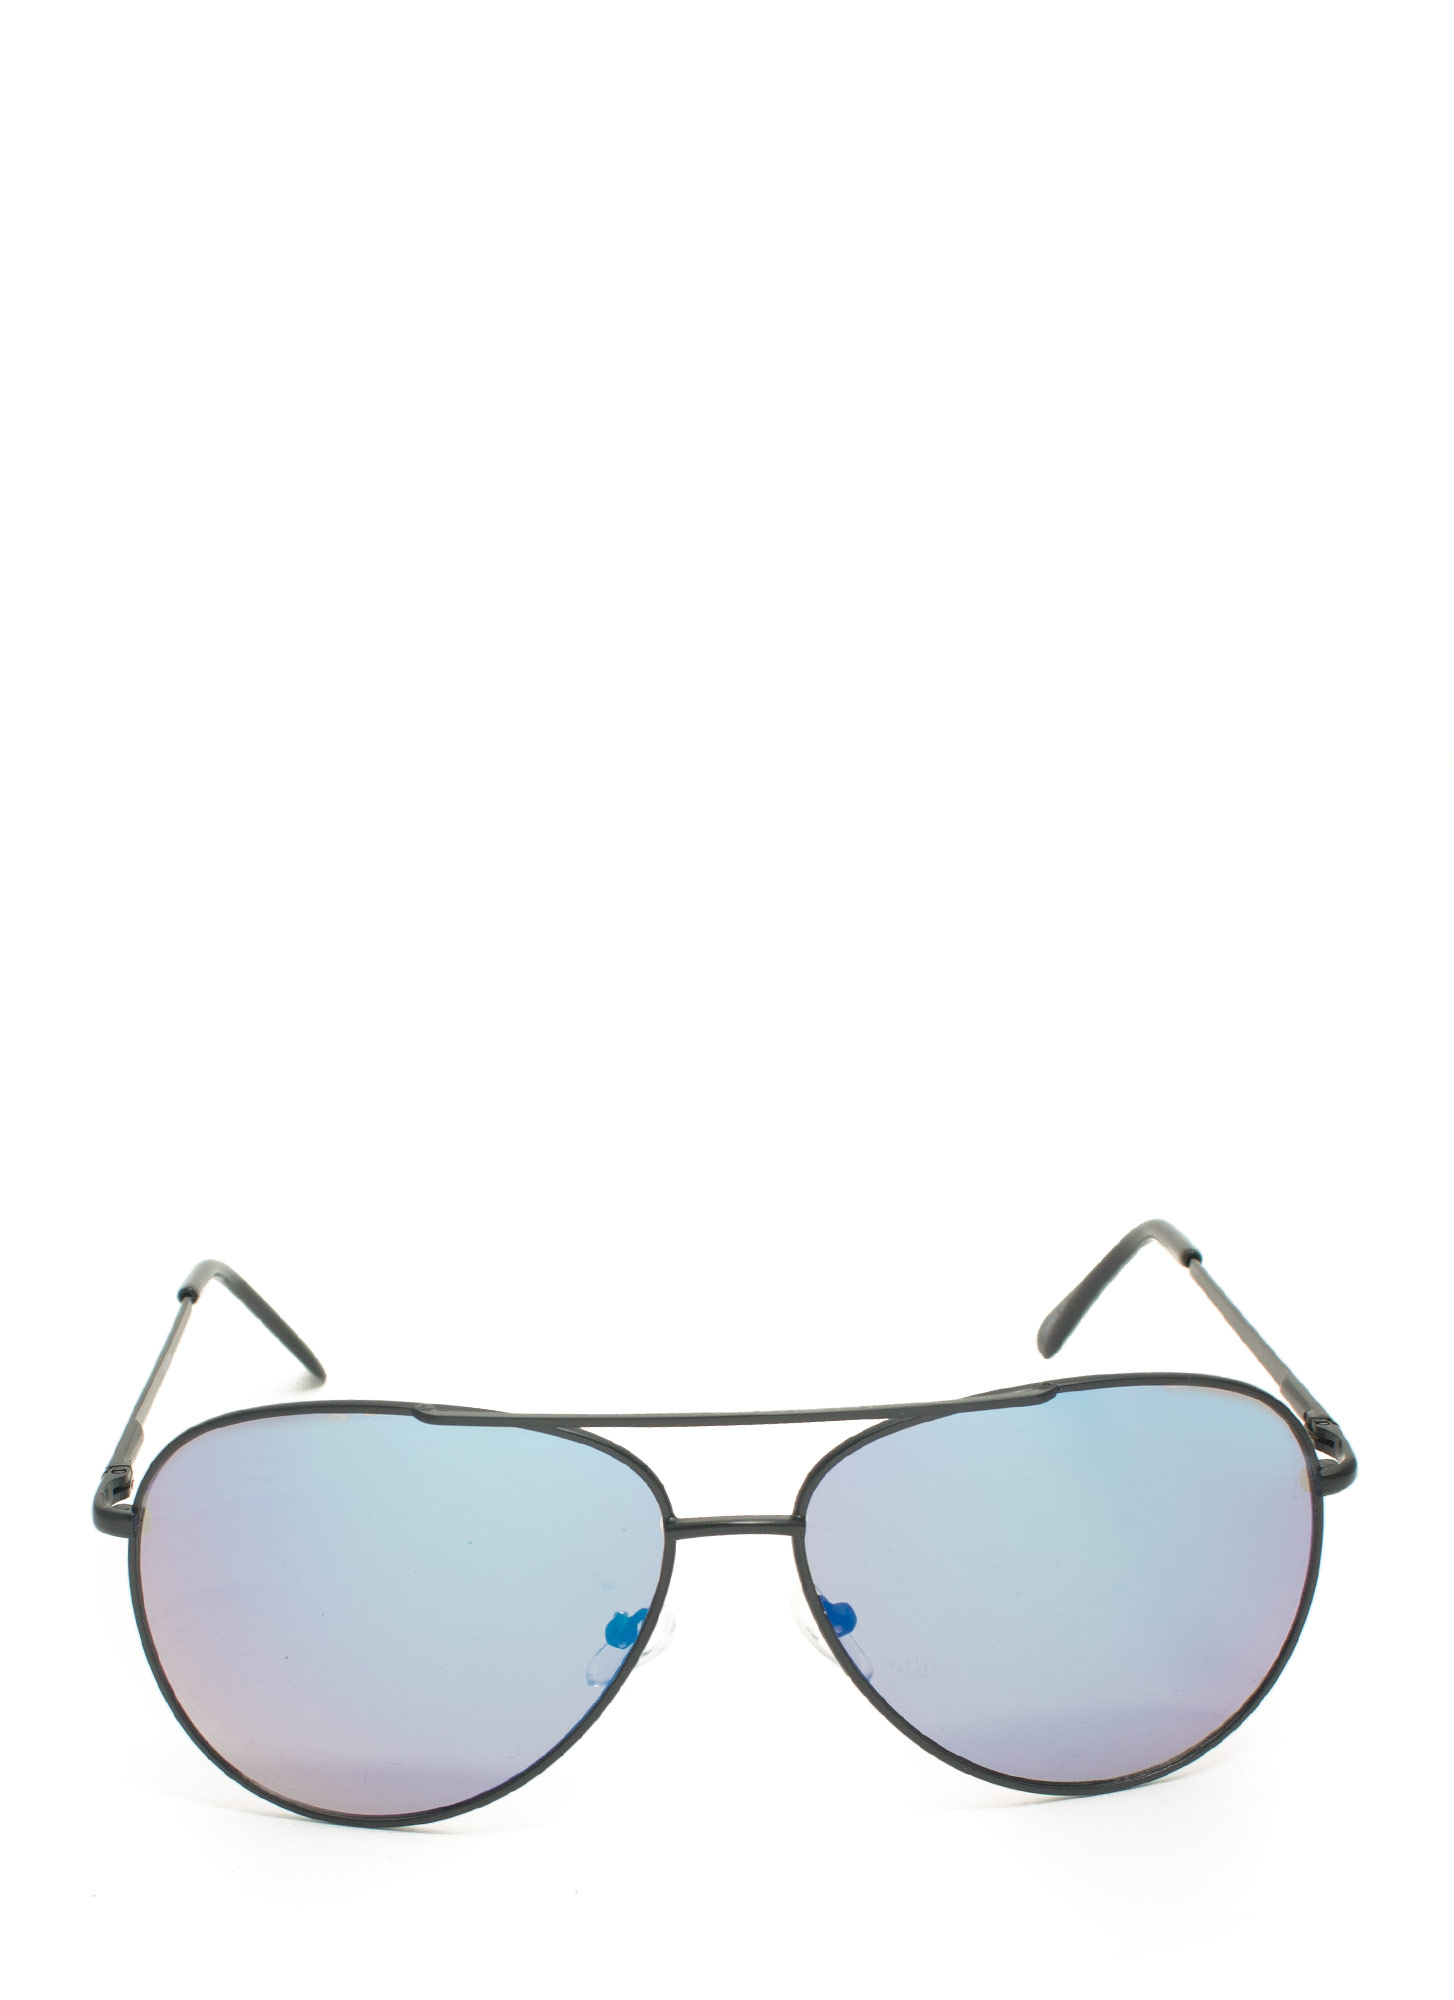 Reflecting Pool Aviator Sunglasses BLUEMBLACK